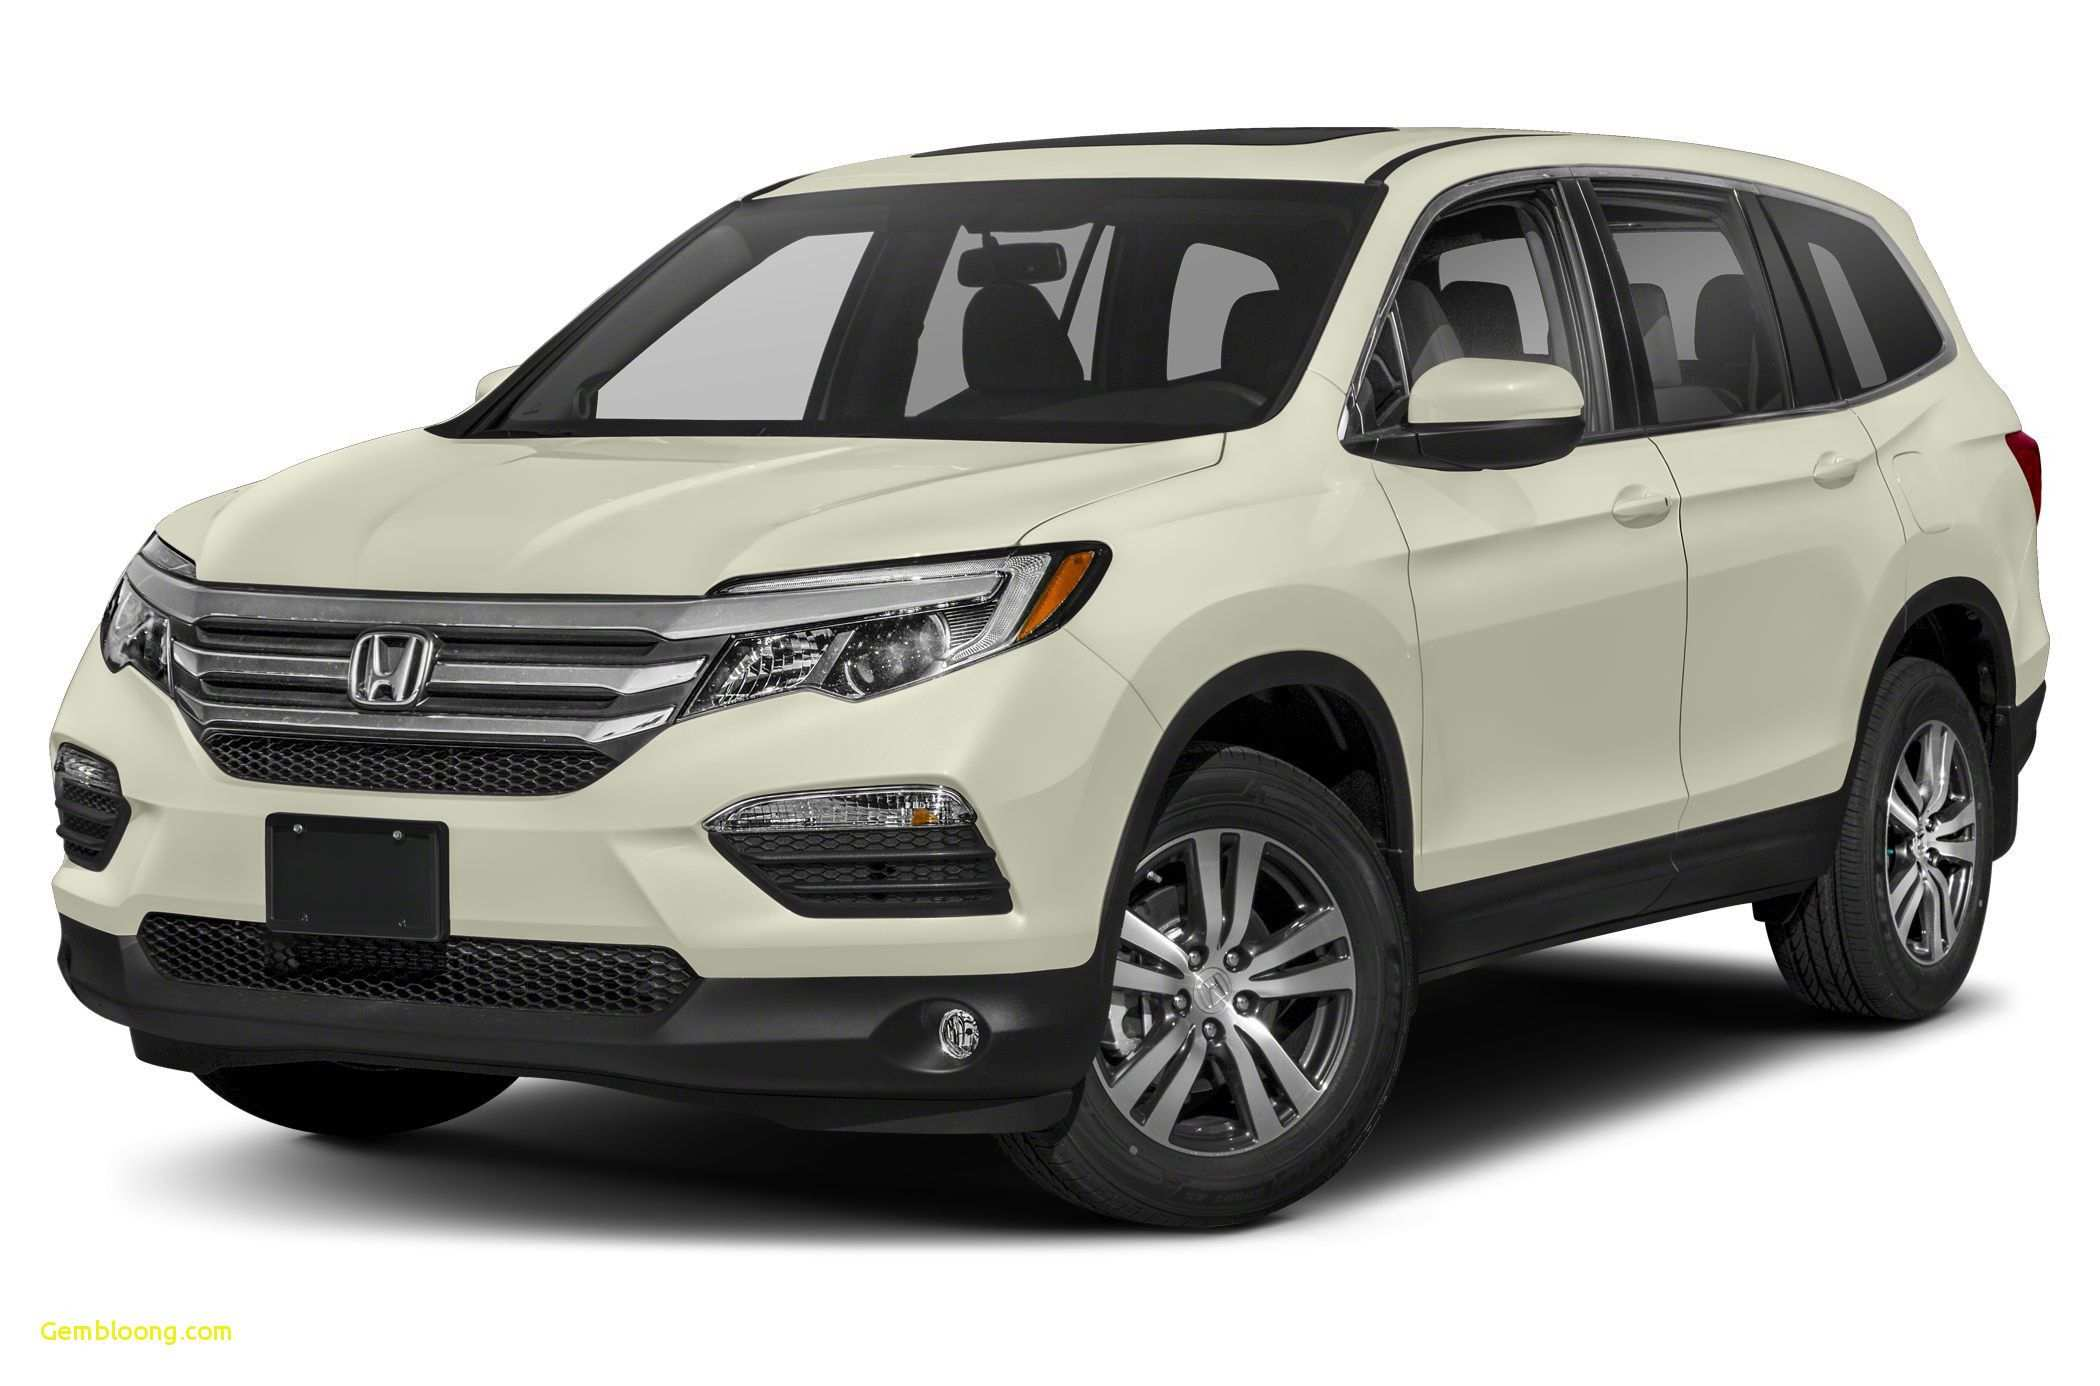 51 New 2020 Honda Pilot Spy Photos Research New